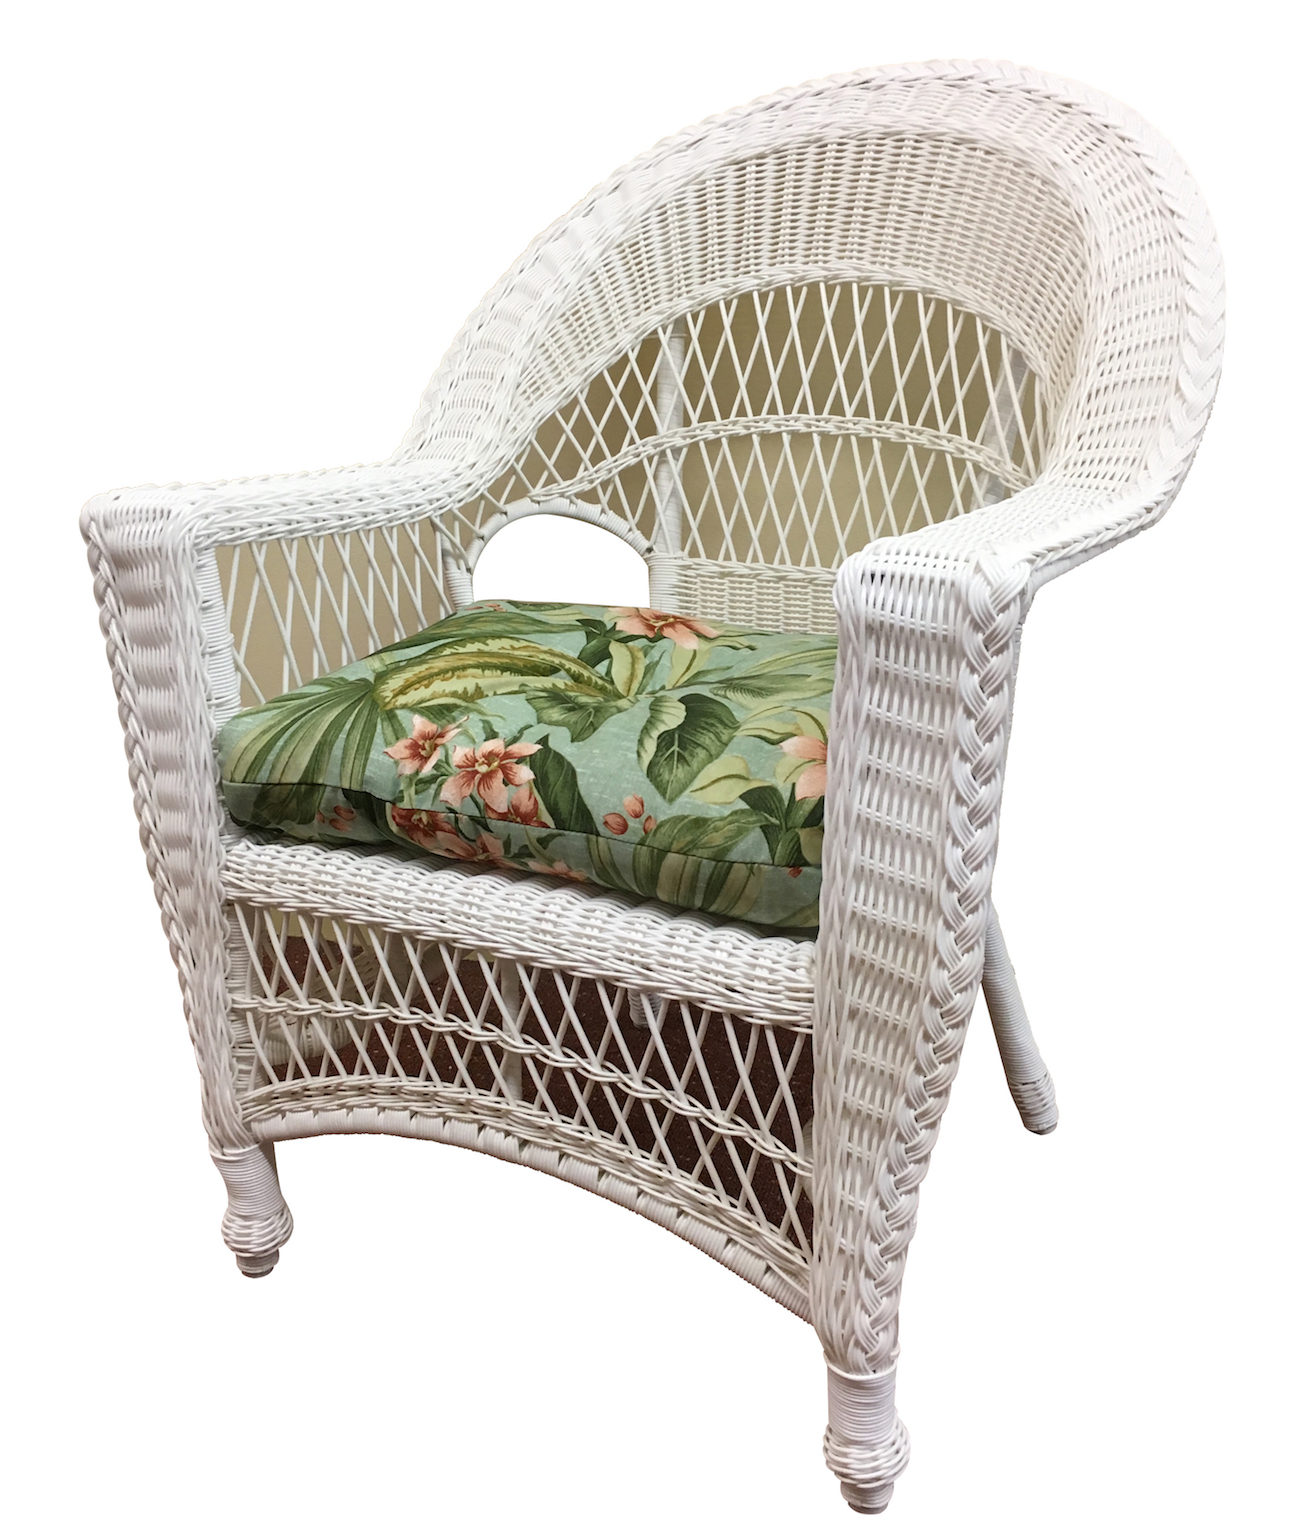 rattan or wicker chairs tiger print chair covers outdoor cape cod